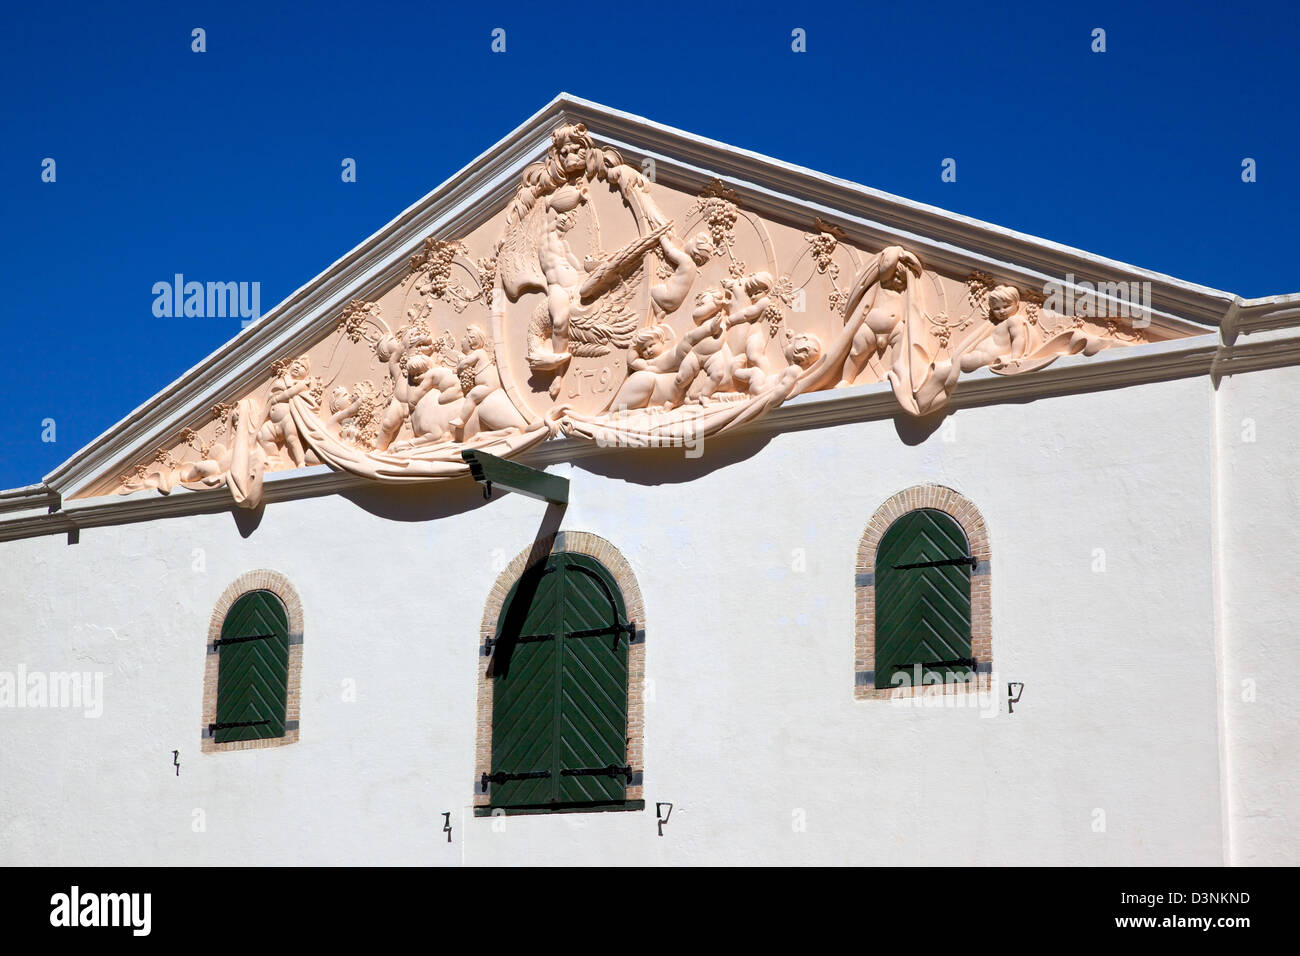 The wine cellar pediment at Groot Constantia, the finest surviving example of Cape Dutch architecture in South Africa. Stock Photo